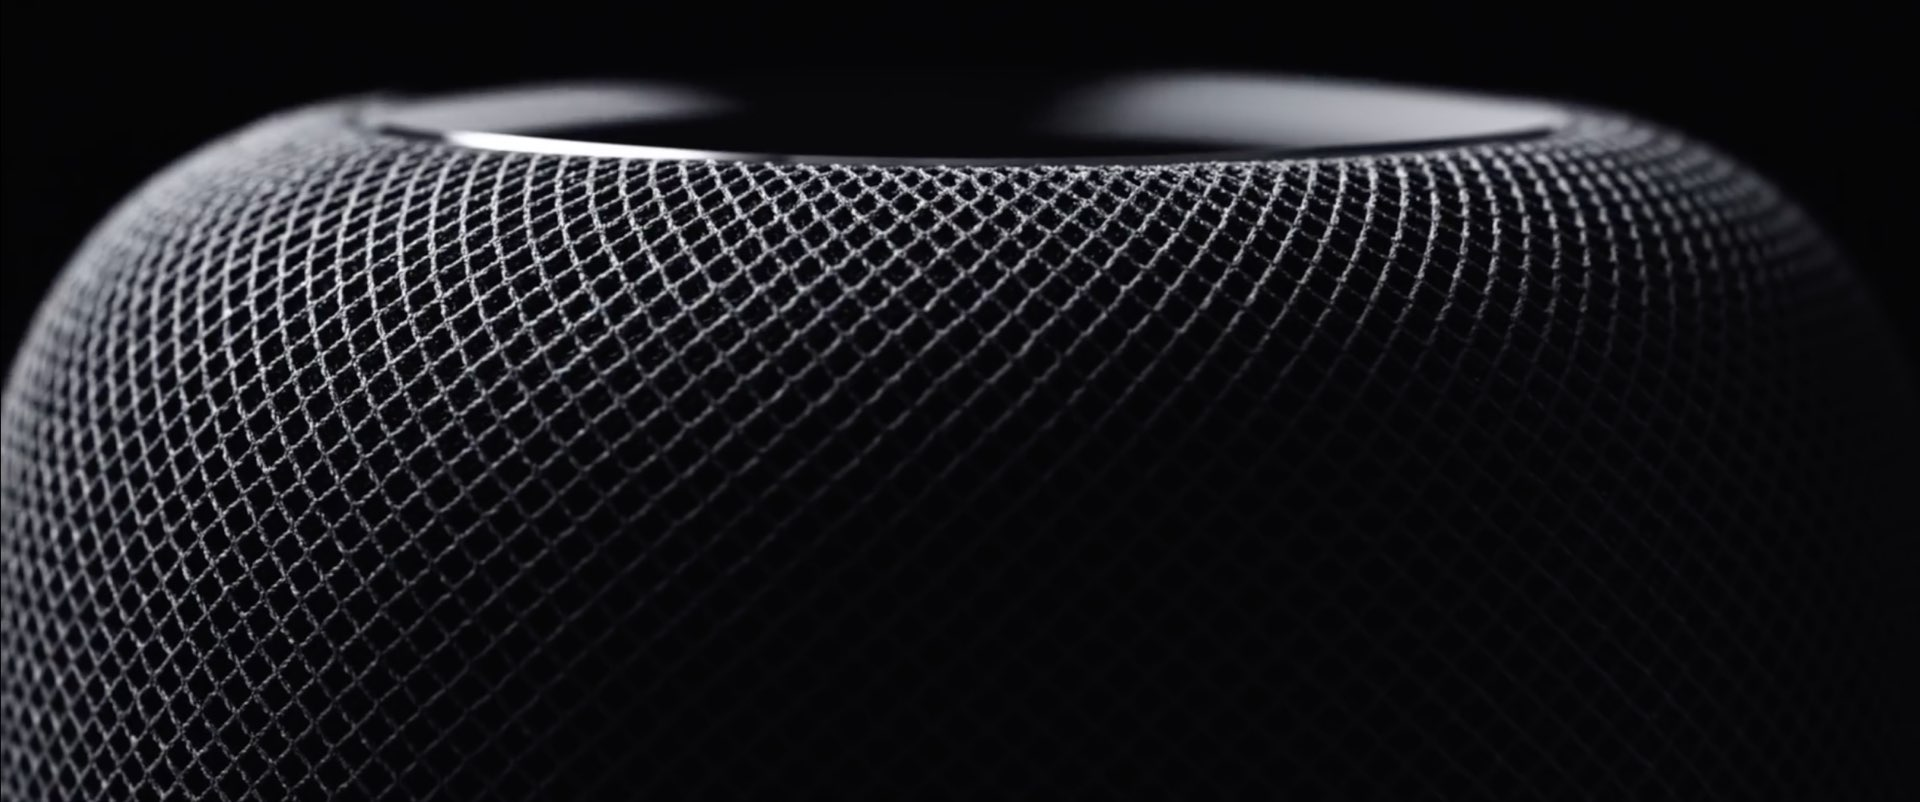 HomePod black top - multiple timers on homepod